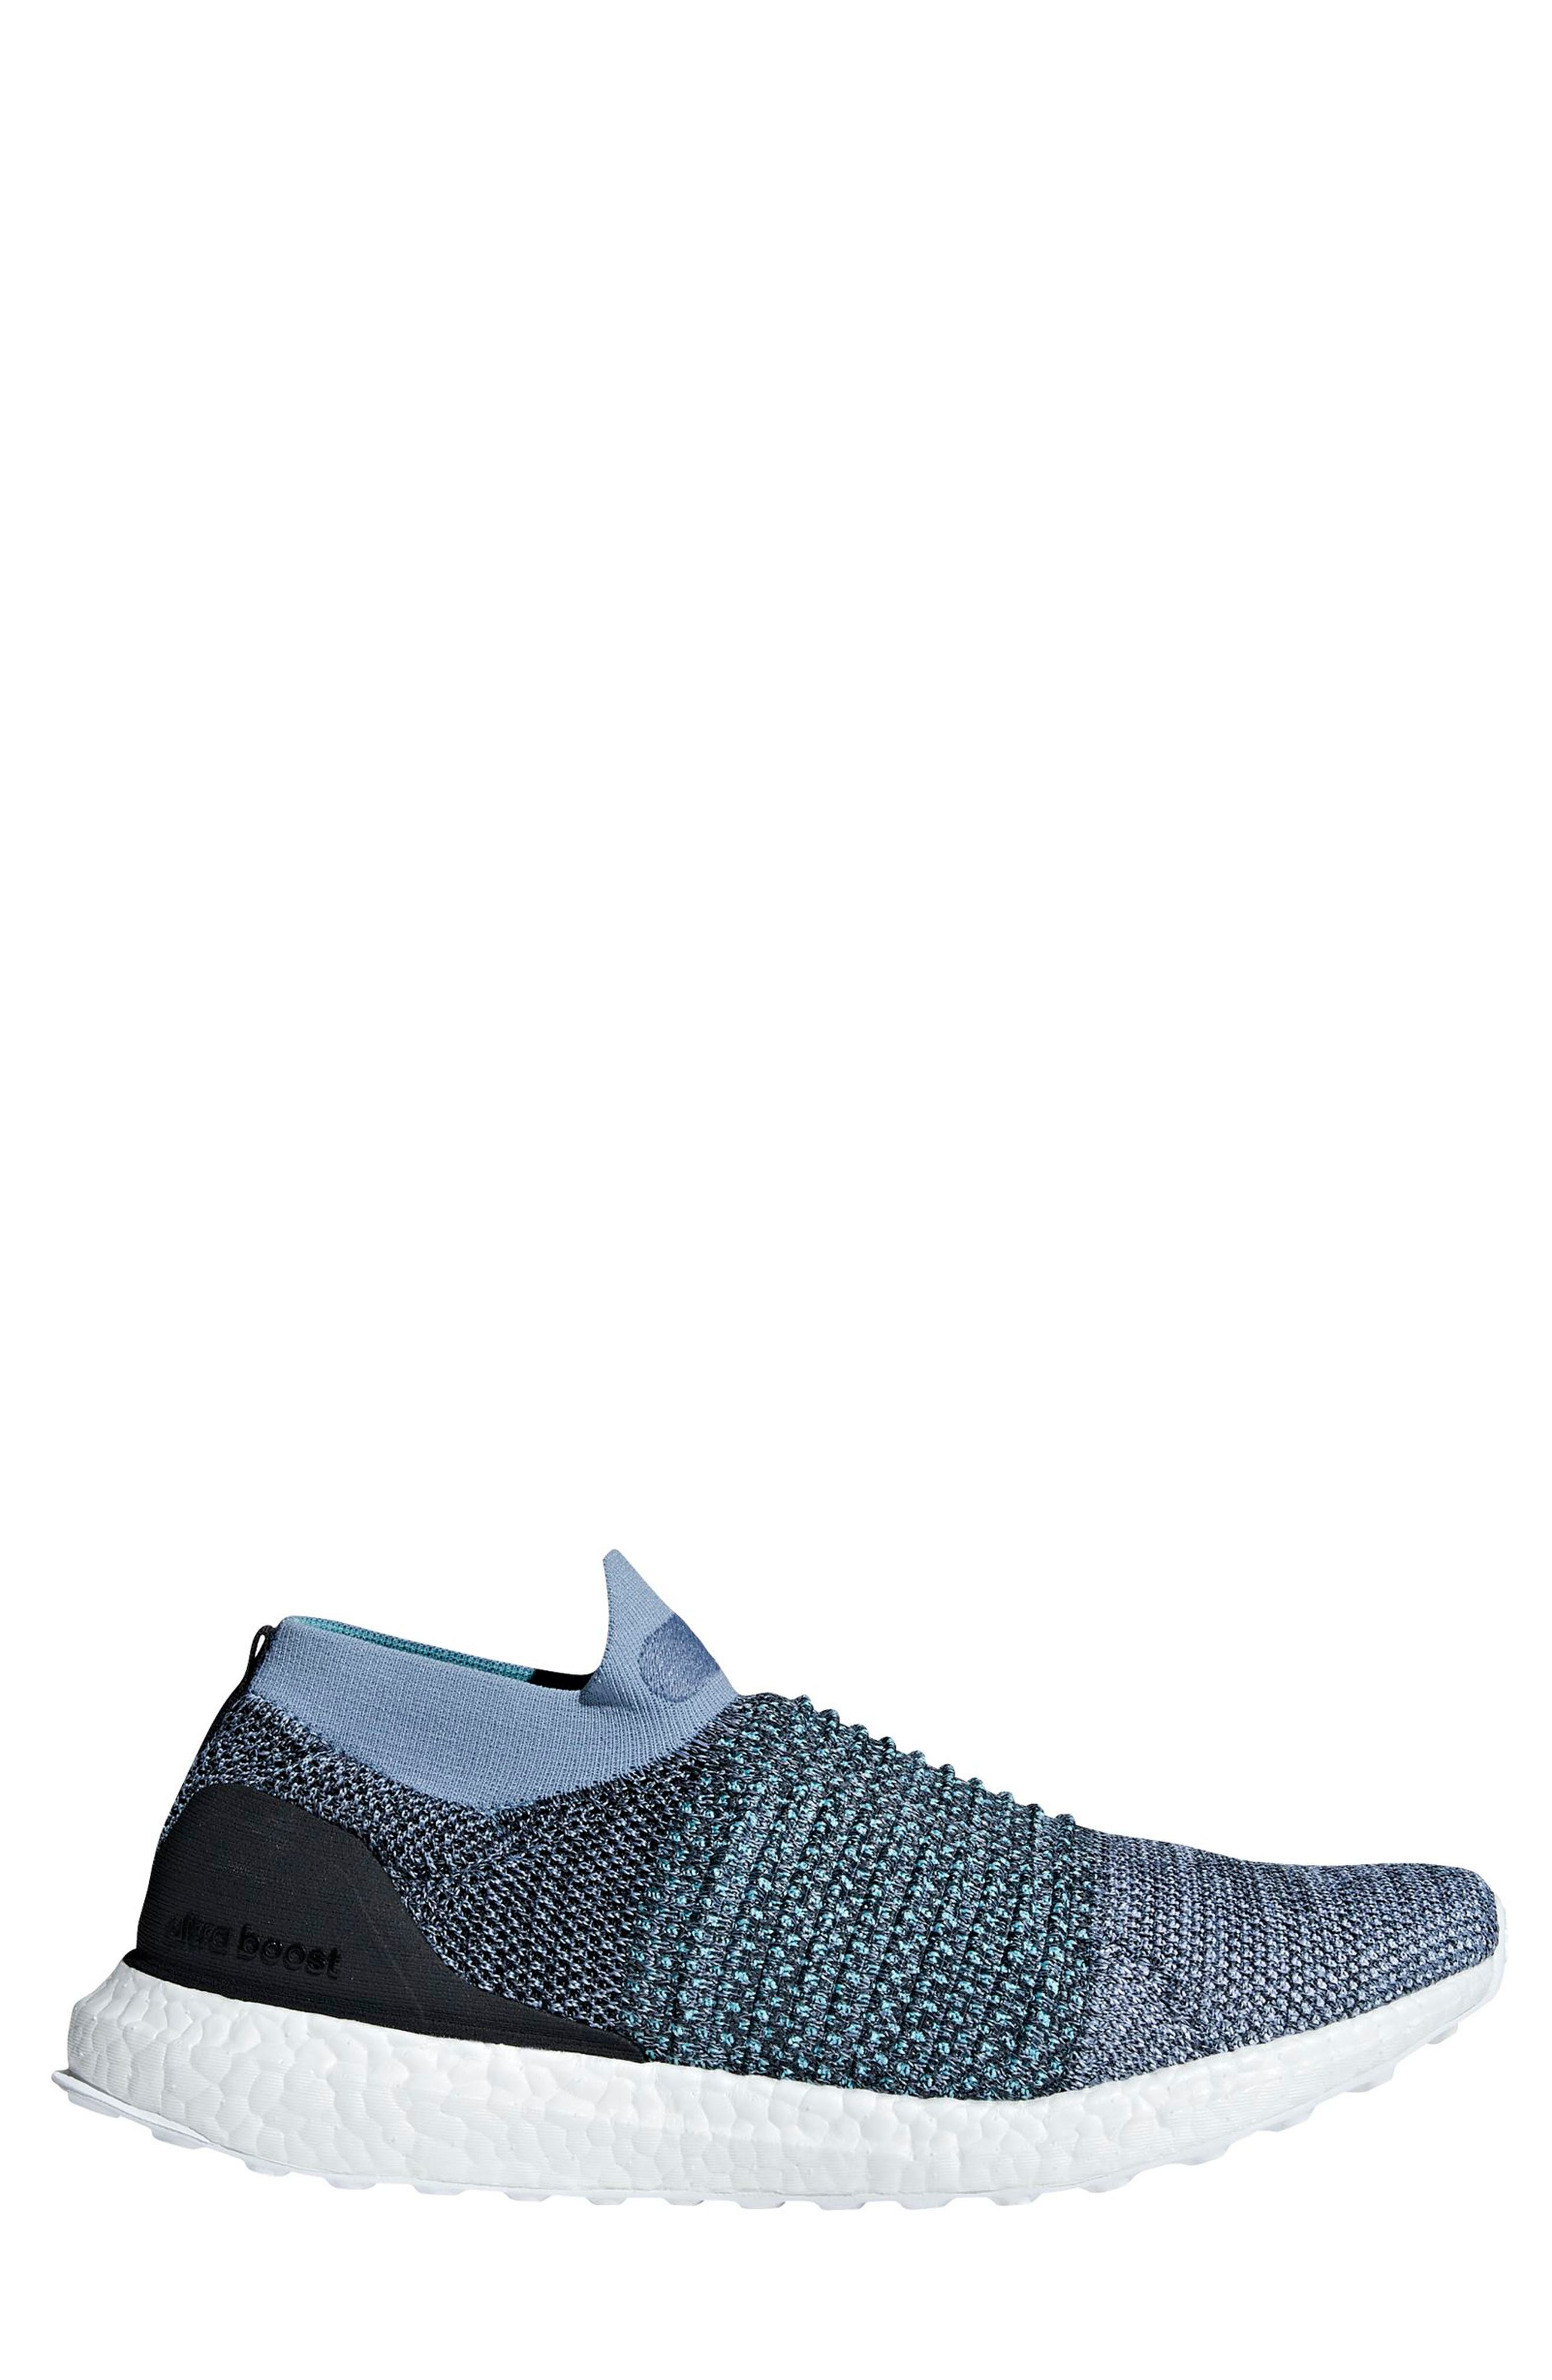 UltraBoost Laceless Running Shoe,                         Main,                         color, Raw Grey/ Carbon/ Blue Spirit